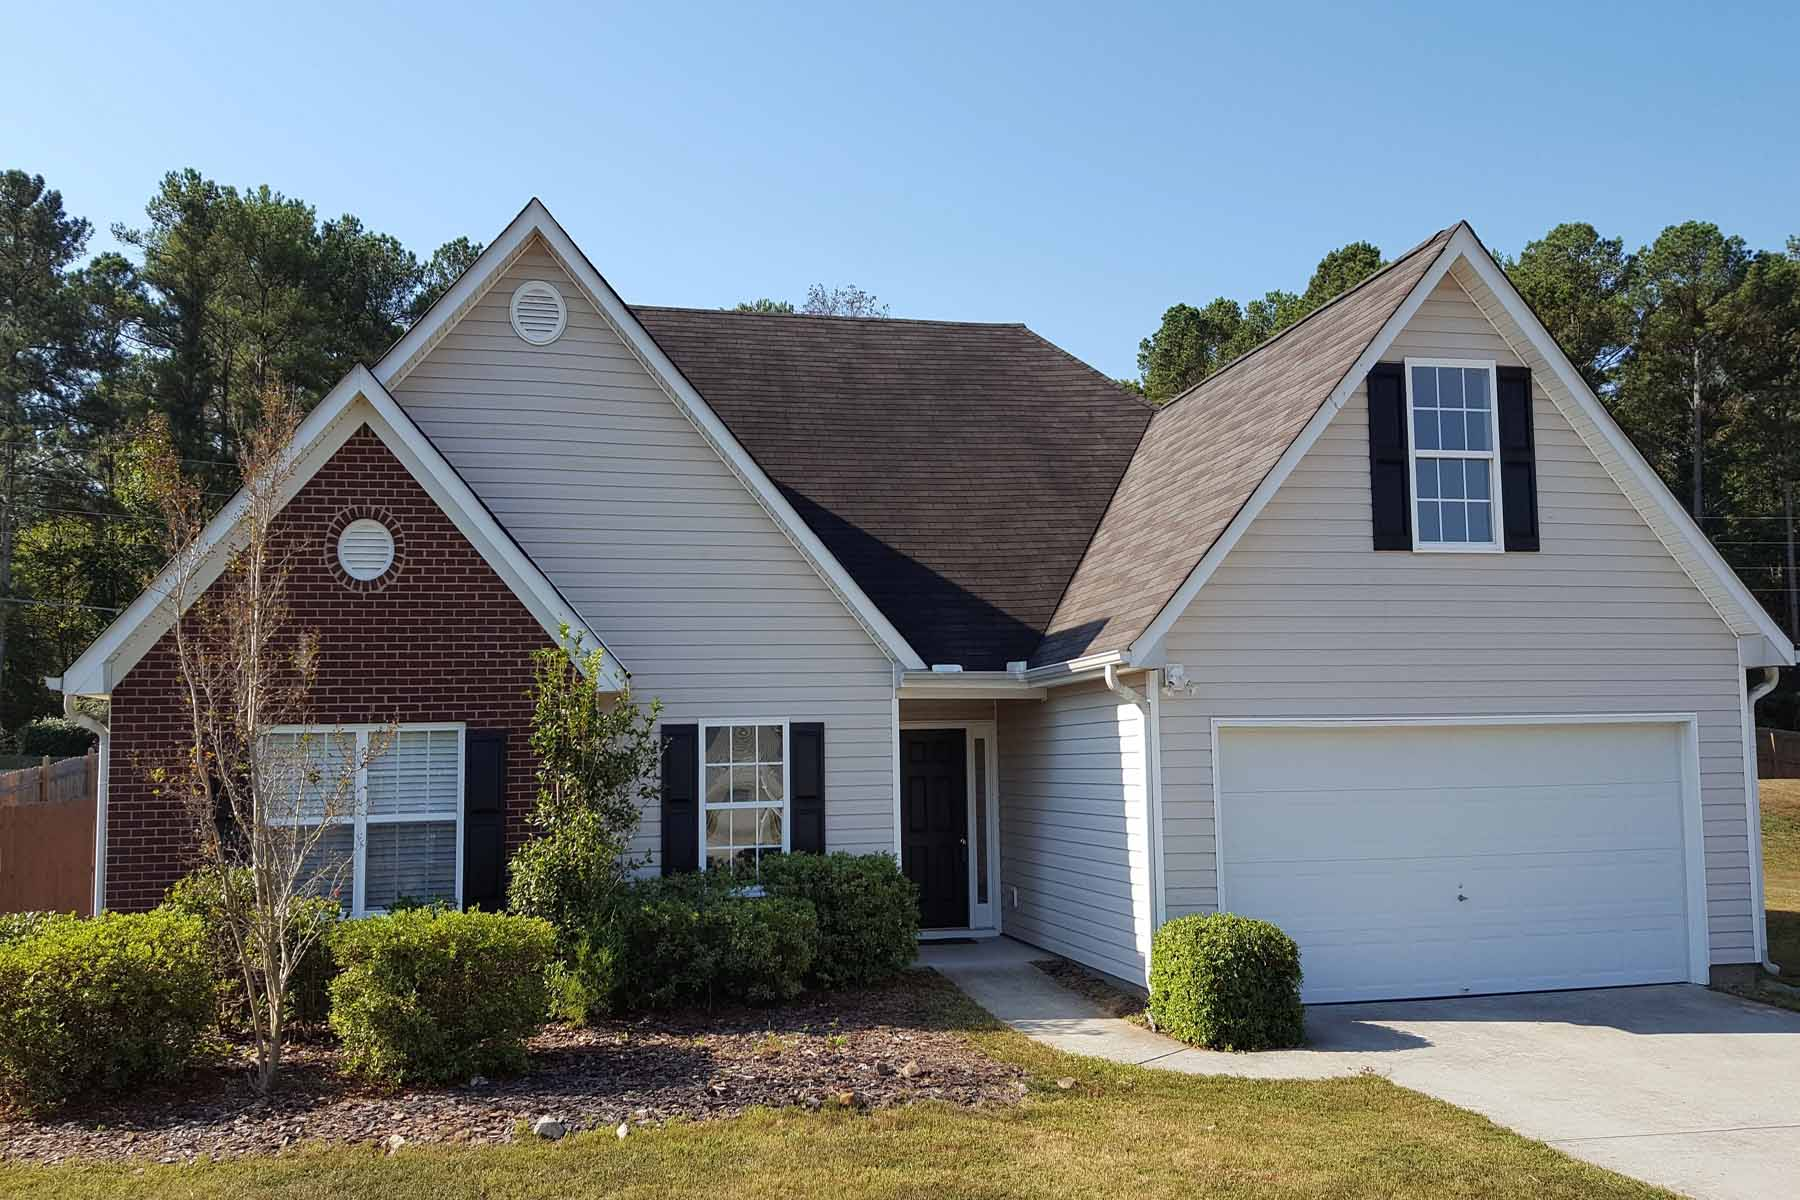 Single Family Home for Active at A Gwinnett Ranch Home with Bonus Room on Spacious Fenced Corner Lot 3396 Madison Ridge Trail Snellville, Georgia 30039 United States